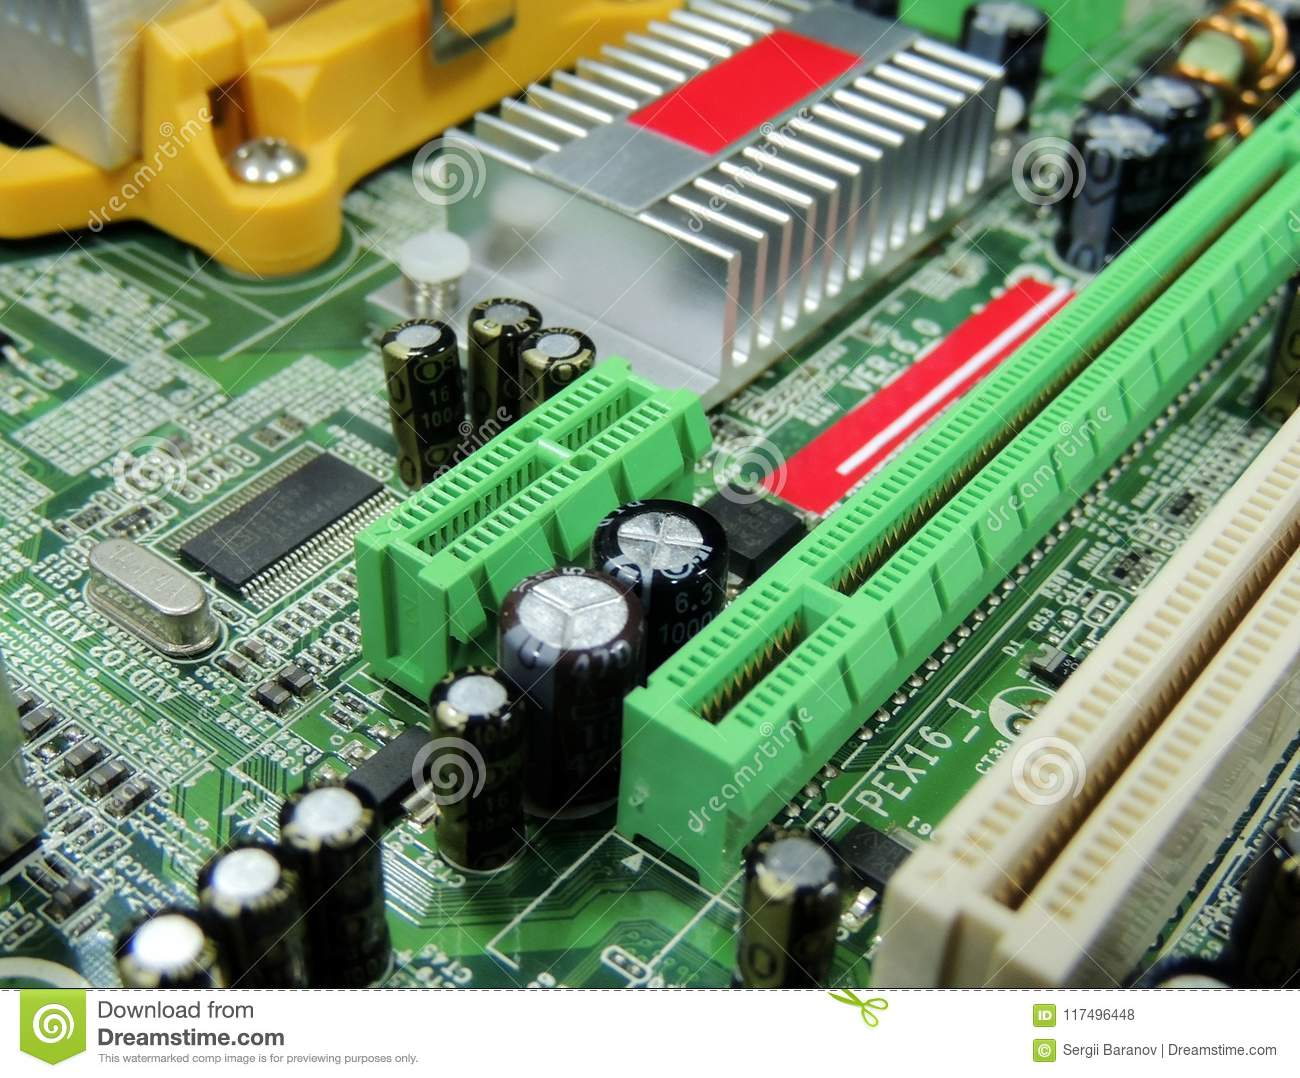 Soldered Radio Components On Computer Circuit Board Close Up Stock With Royalty Free Photos Image Photo